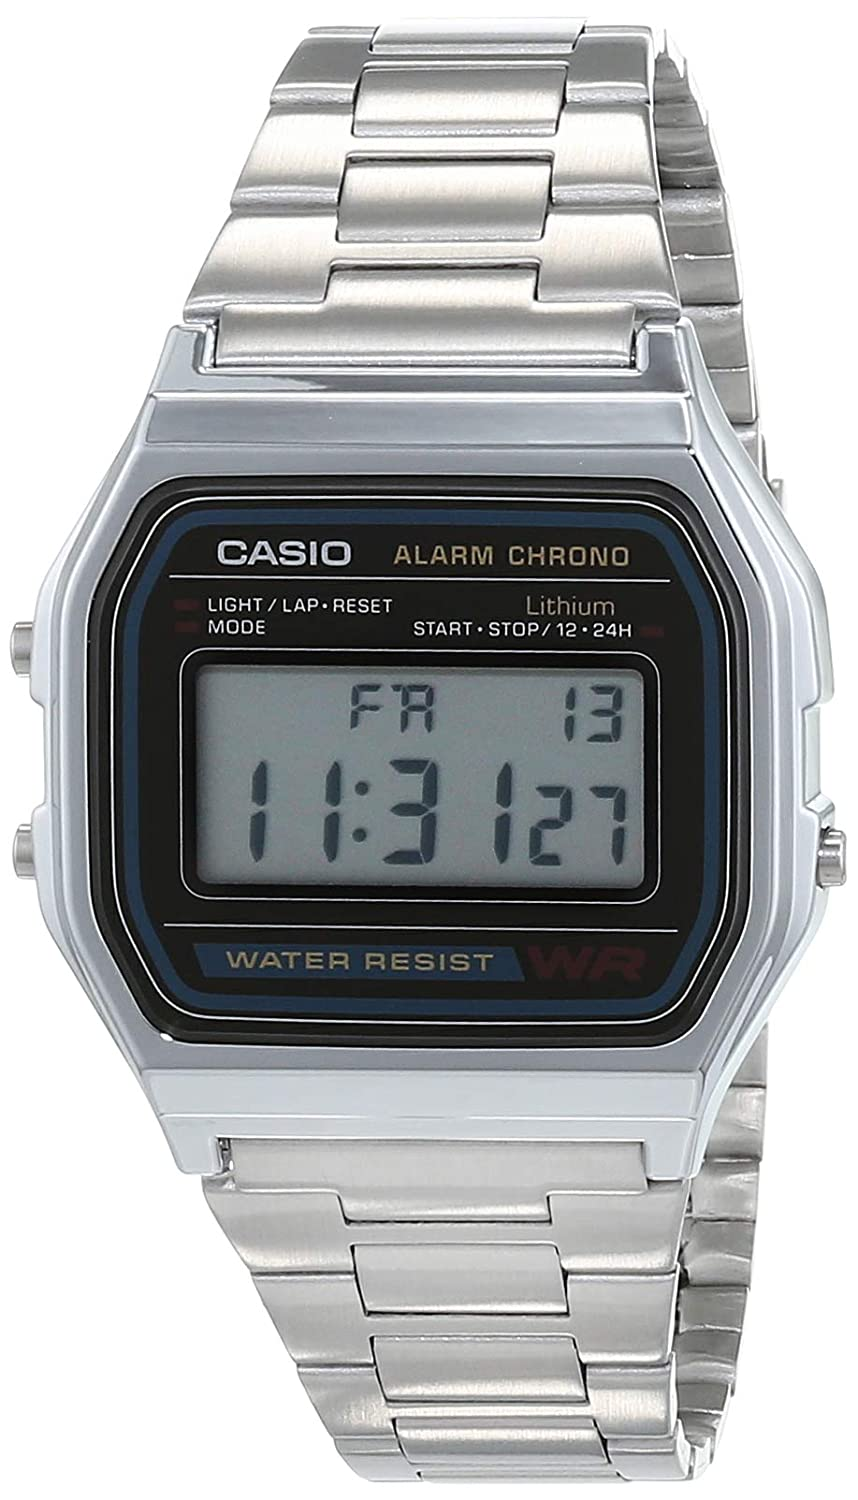 Amazon.com: Casio Mens Classic Digital Retro Daily Alarm Micro Light Watch A158WA-1D Water Resistant: Watches